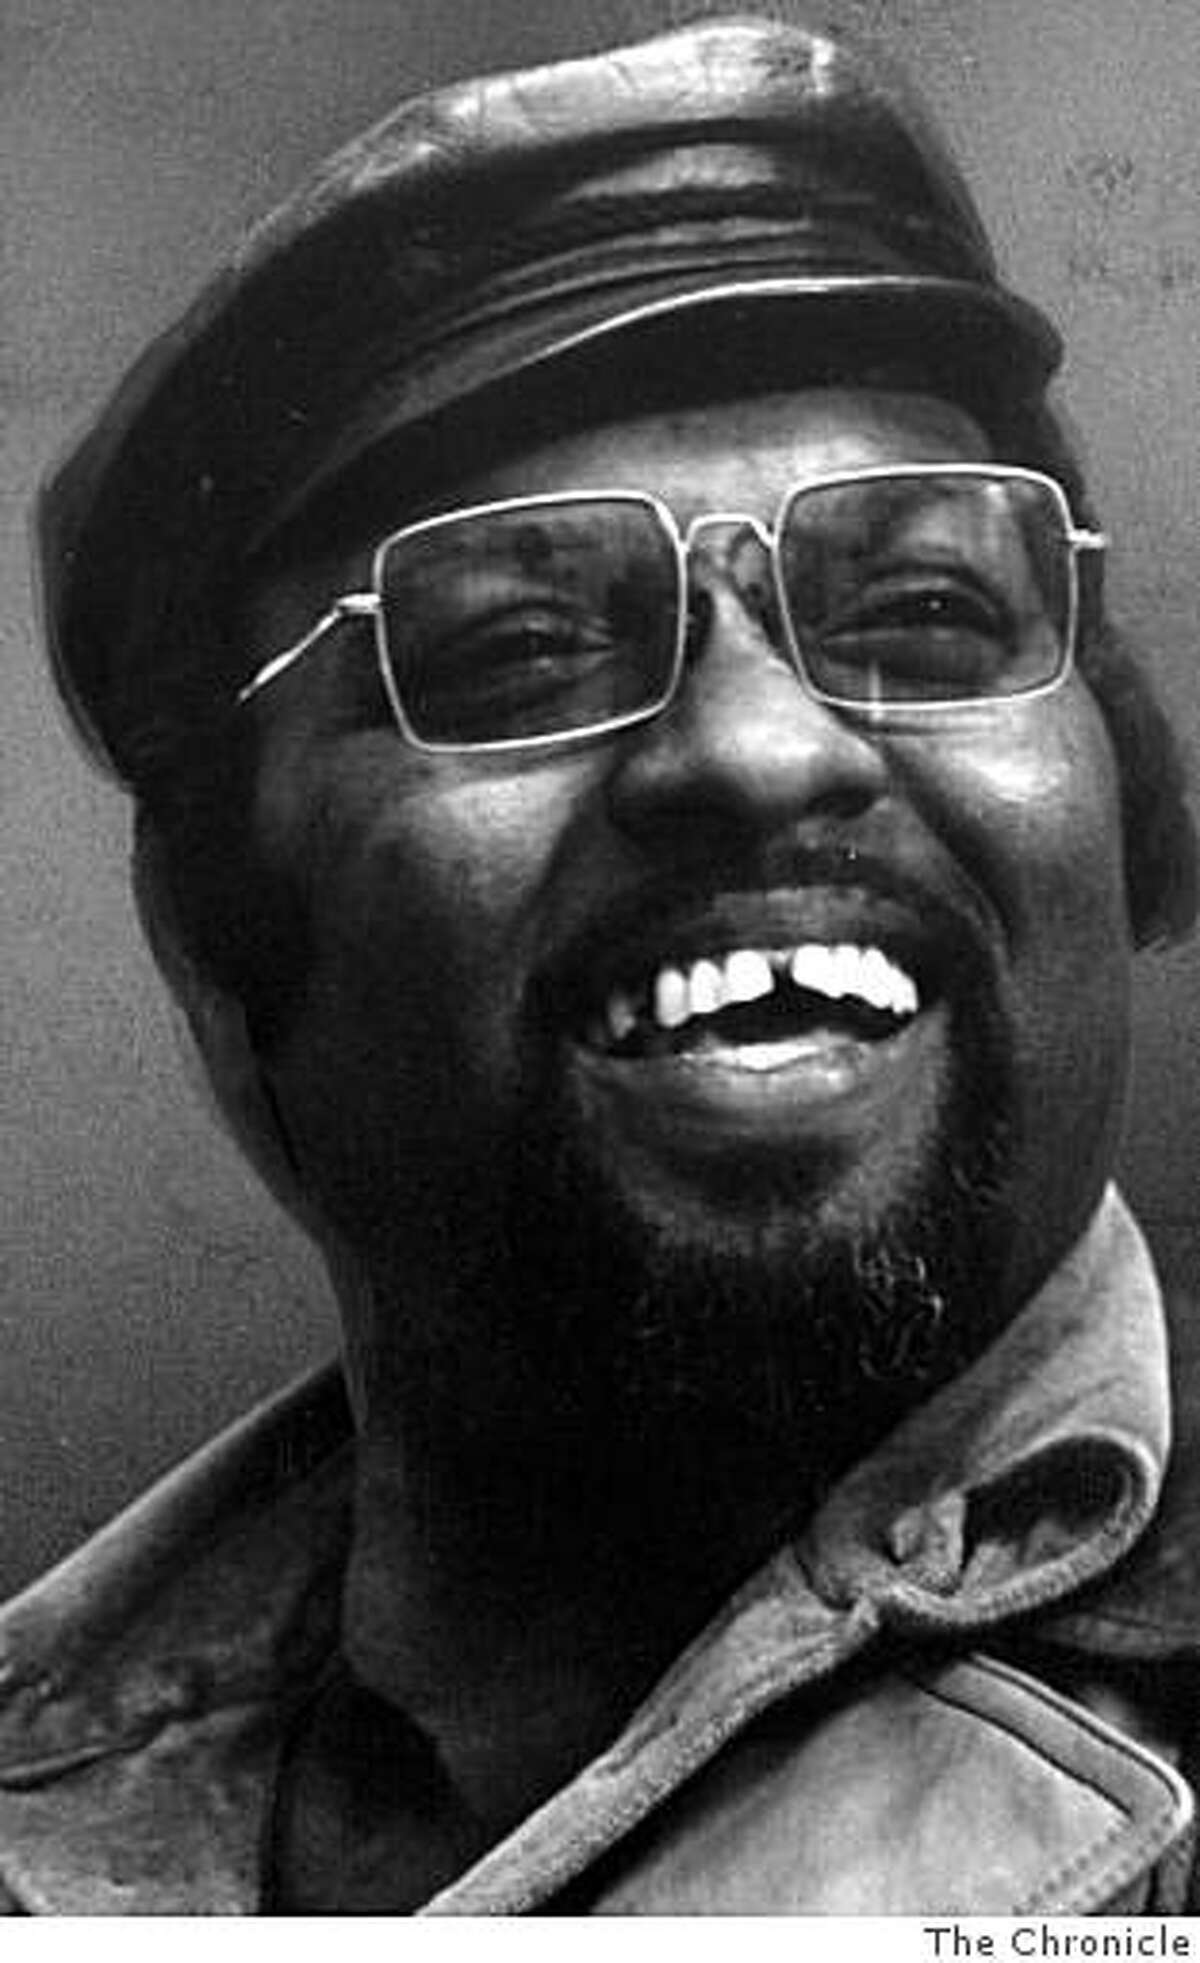 A giant in the Bay Area music scene, Merl Saunders died on October 24, 2008 from complications from an infection. Saunders is pictured here in a 1972 file photo.